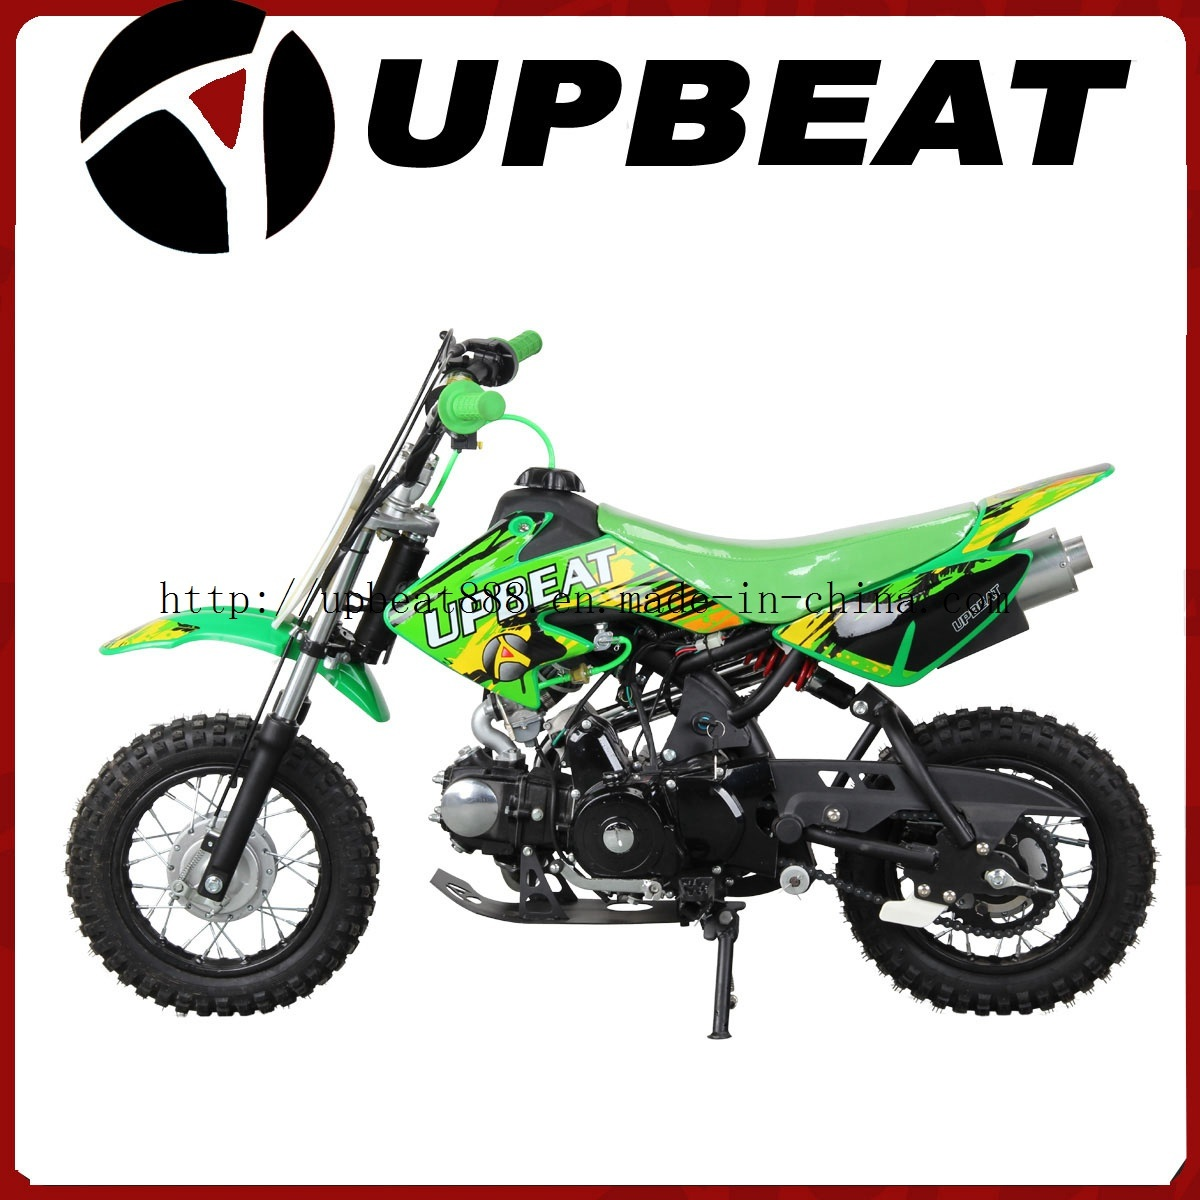 Upbeat Motorcycle 50cc Dirt Bike 110cc Dirt Bike for Kids Use pictures & photos